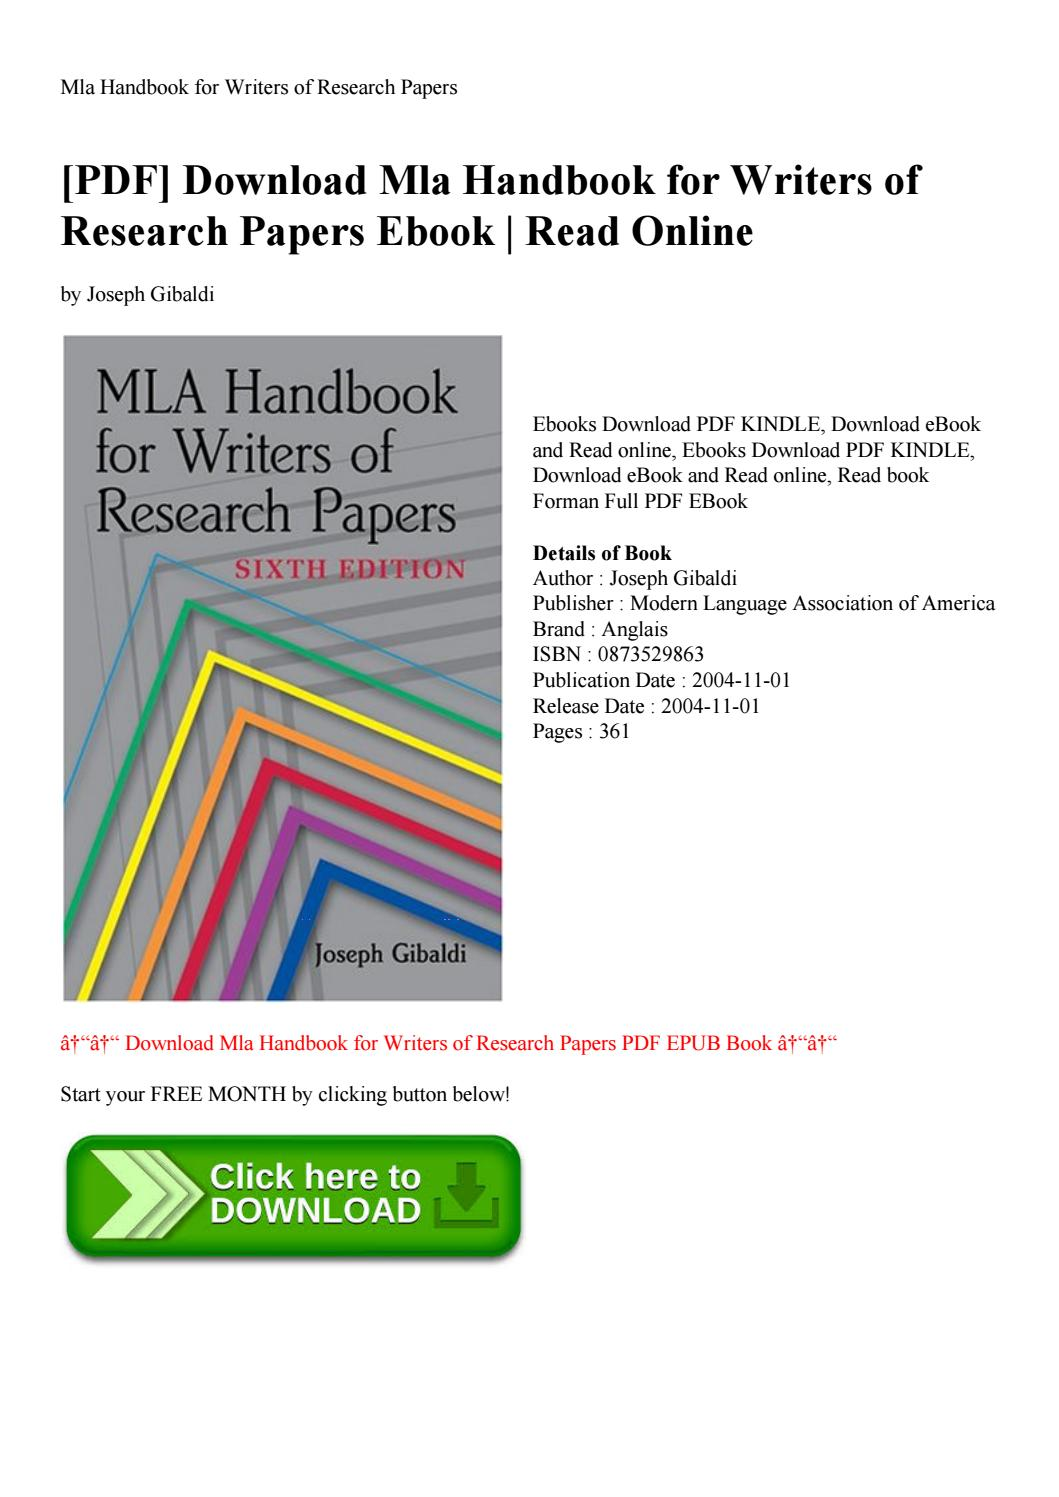 002 Mla Handbook For Writing Research Papers Pdf Paper Page 1 Beautiful Writers Of 7th Edition Free 6th 2009 Full